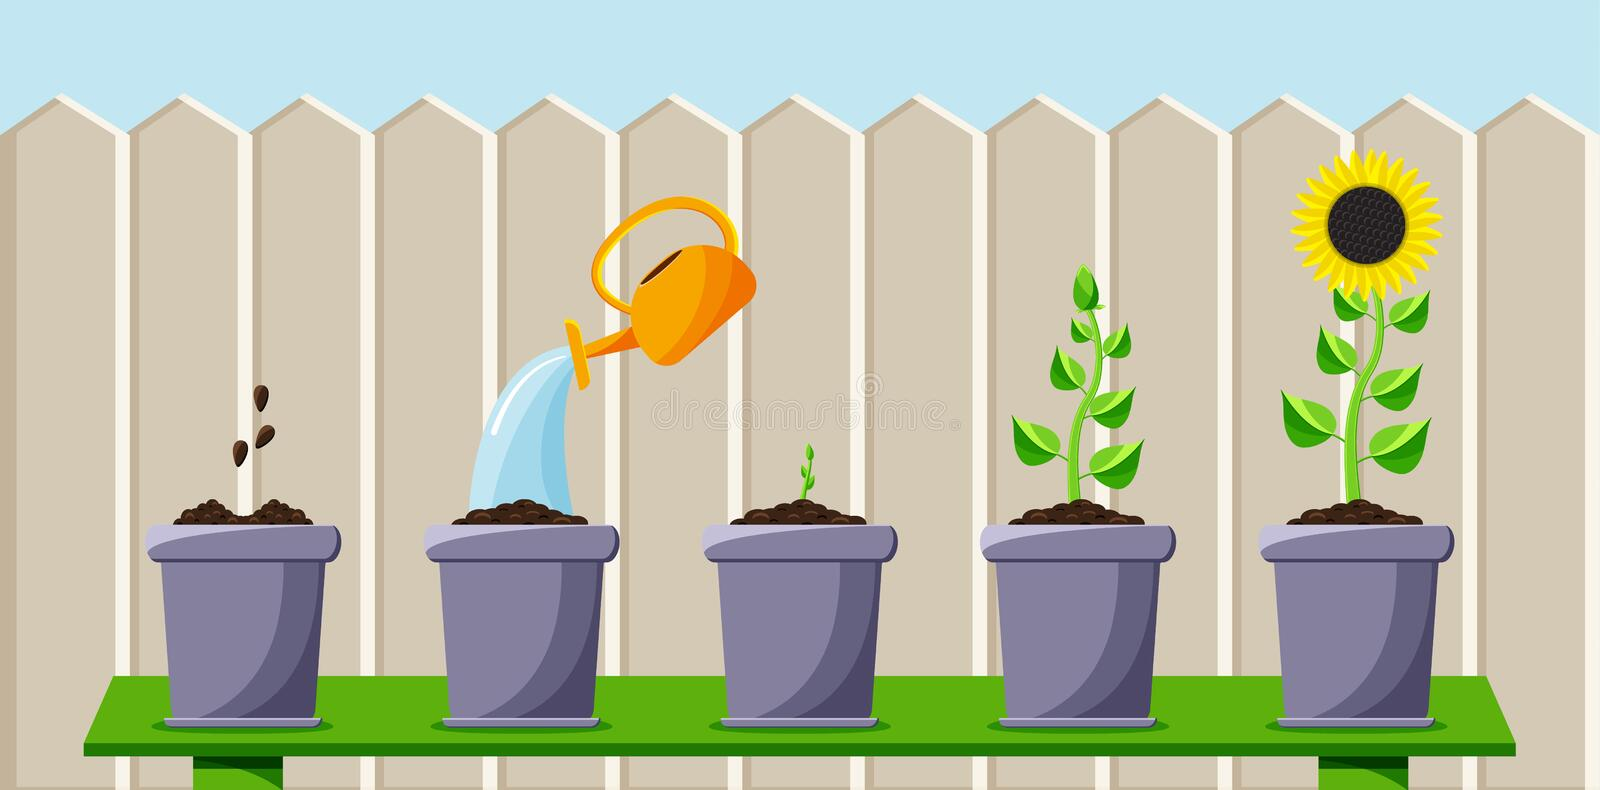 Cartoon process of planting and growing the flower. vector illustration